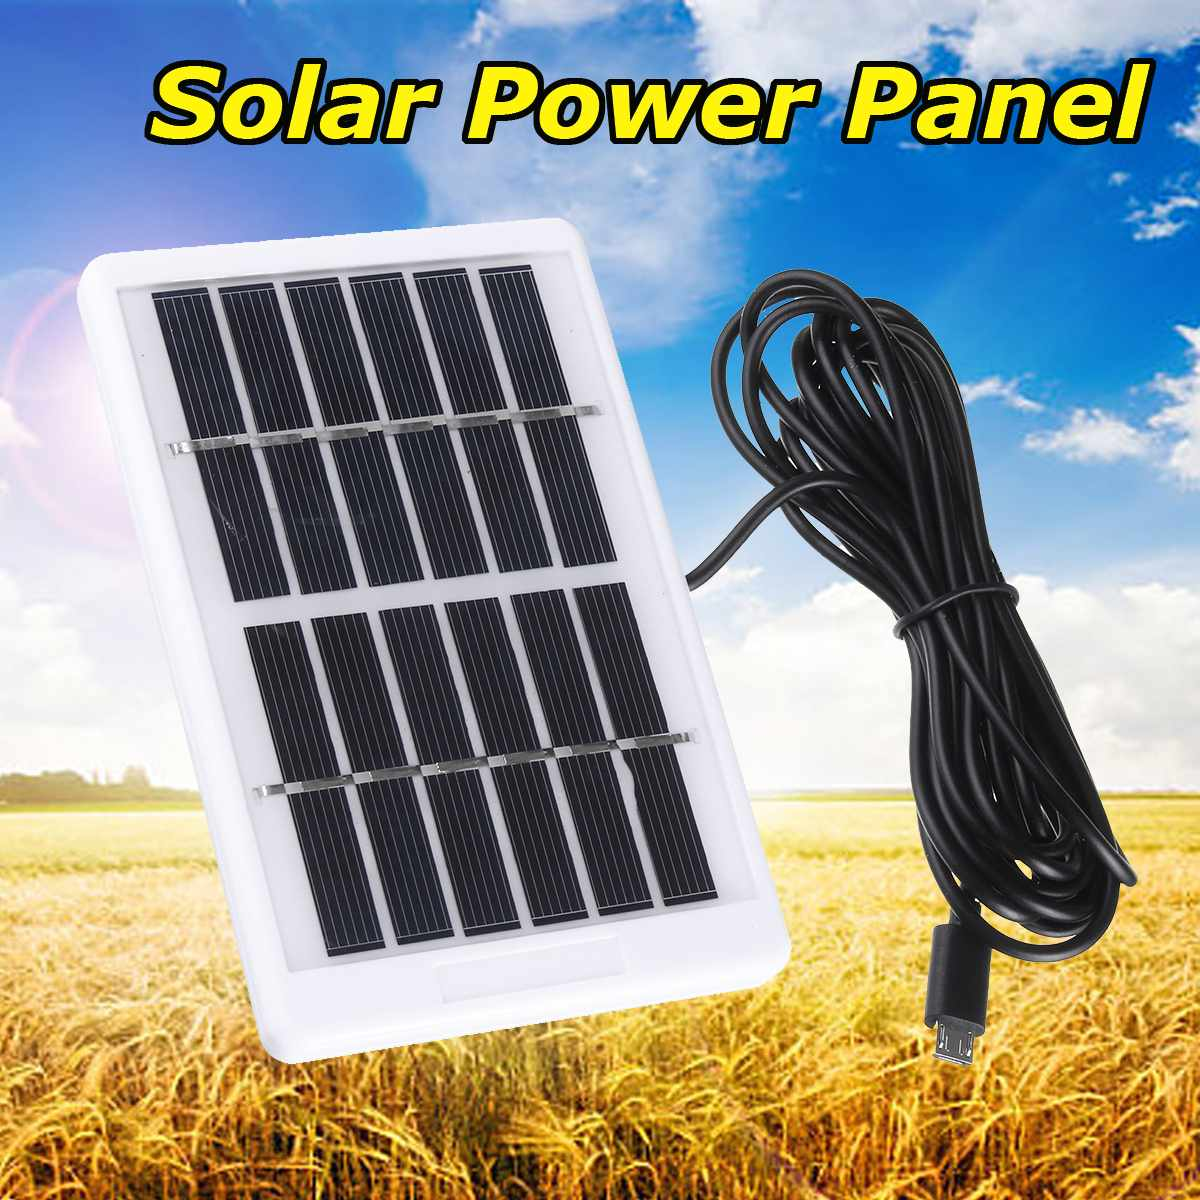 Solar Panel Mini Solar System DIY For Battery Cell Phone Chargers Portable Solar Cell For Multi-function Household Camping 6V12W